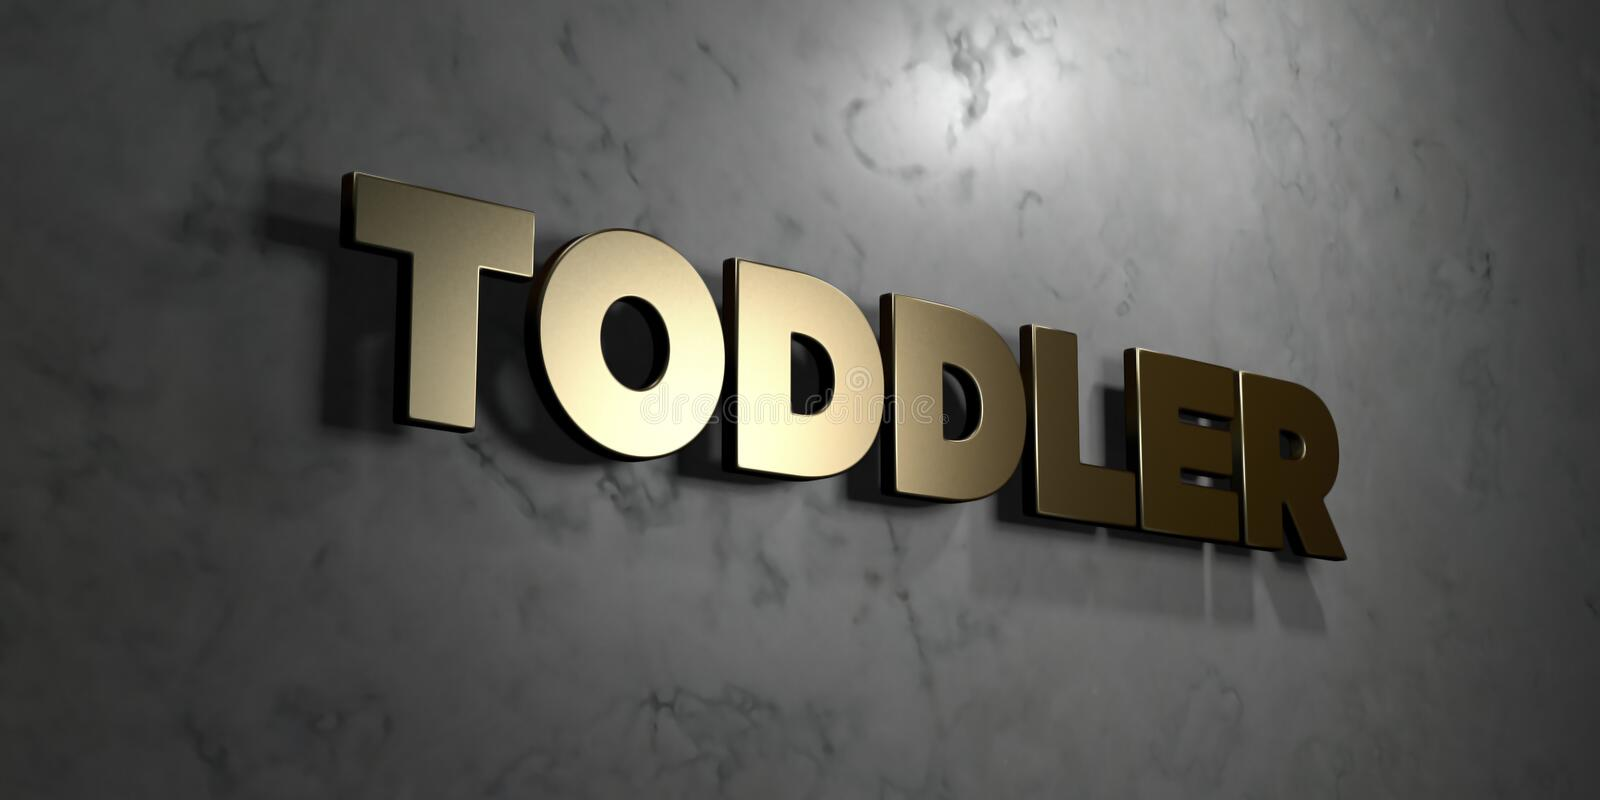 Toddler - Gold sign mounted on glossy marble wall - 3D rendered royalty free stock illustration. This image can be used for an online website banner ad or a royalty free illustration